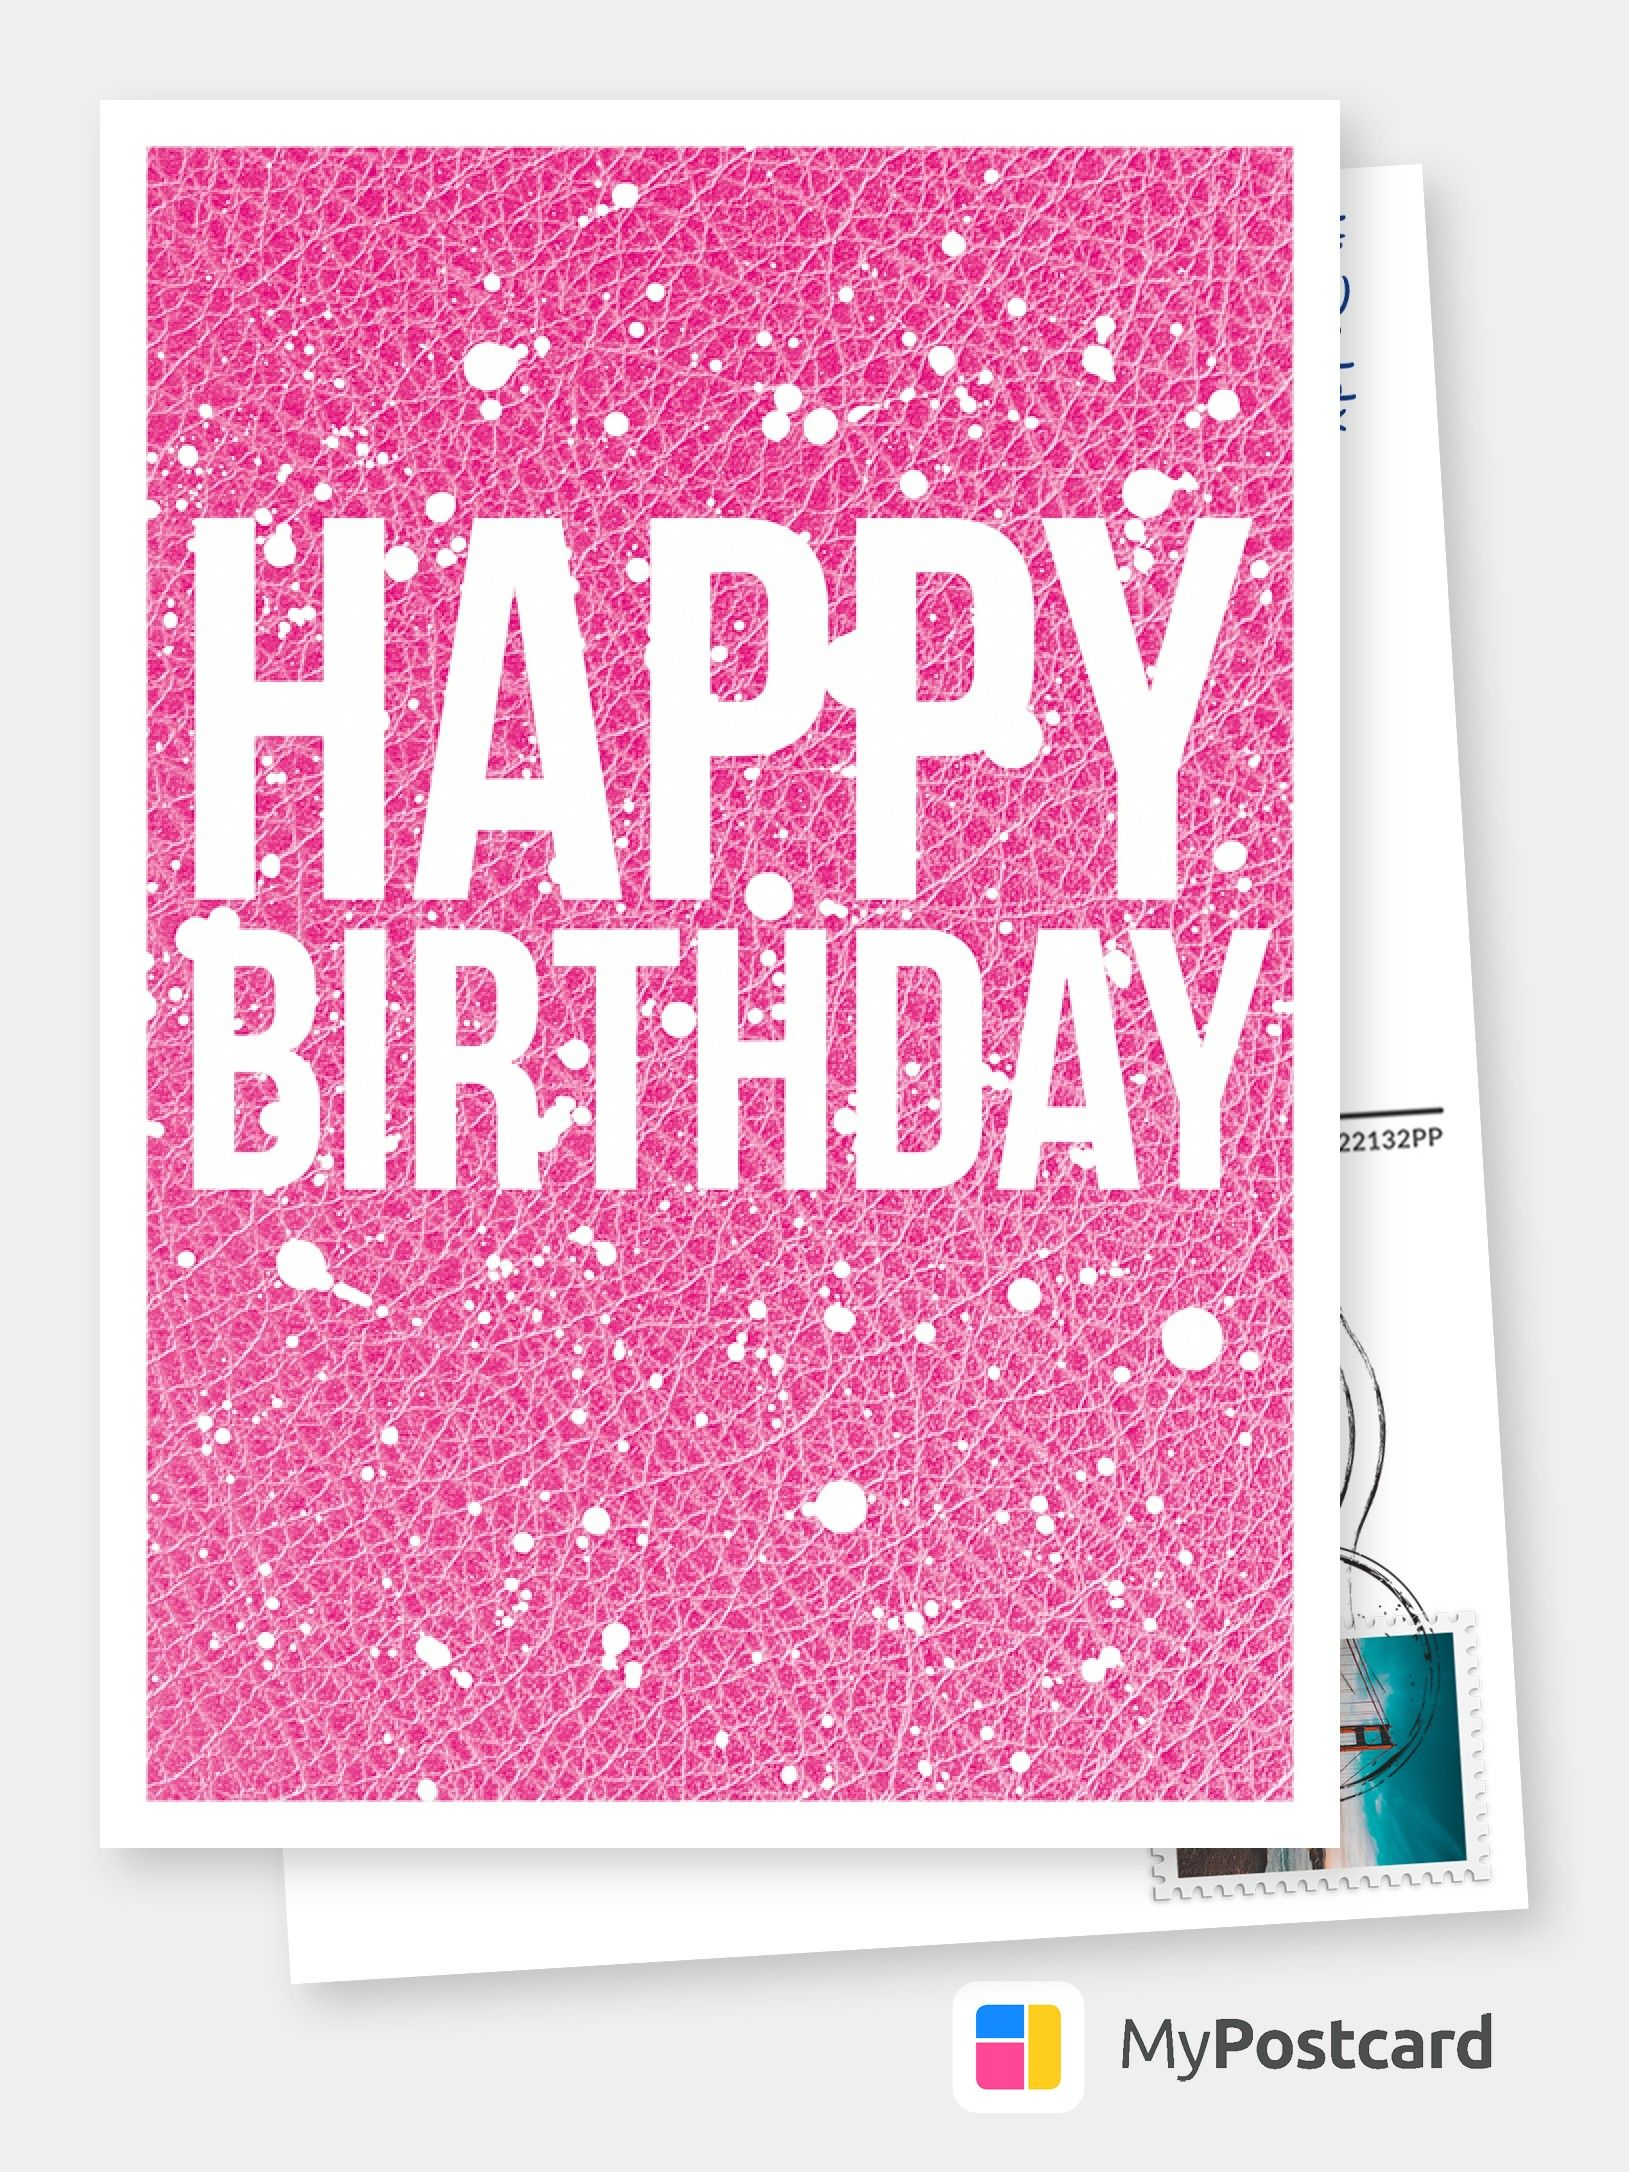 Printed Happy Birthday Cards Online Free International Shipping Send Cards Online Mailed For You Internationally Happy Birthday Cards Online Birthday Card Online Send Birthday Card